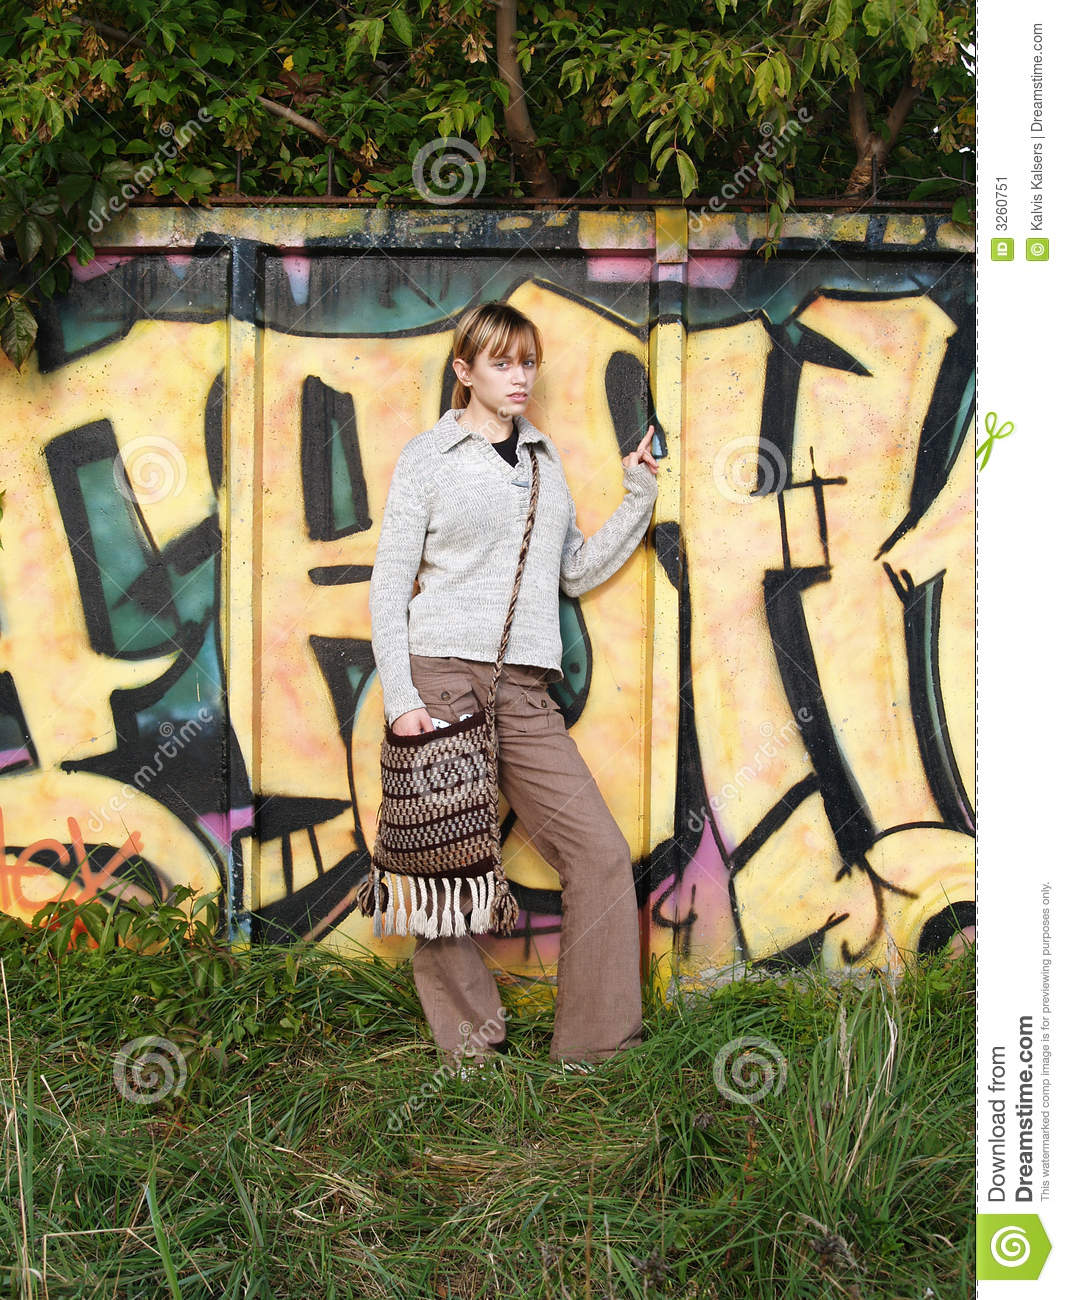 Download Graffiti in nature stock image. Image of decay, hair, culture - 3260751